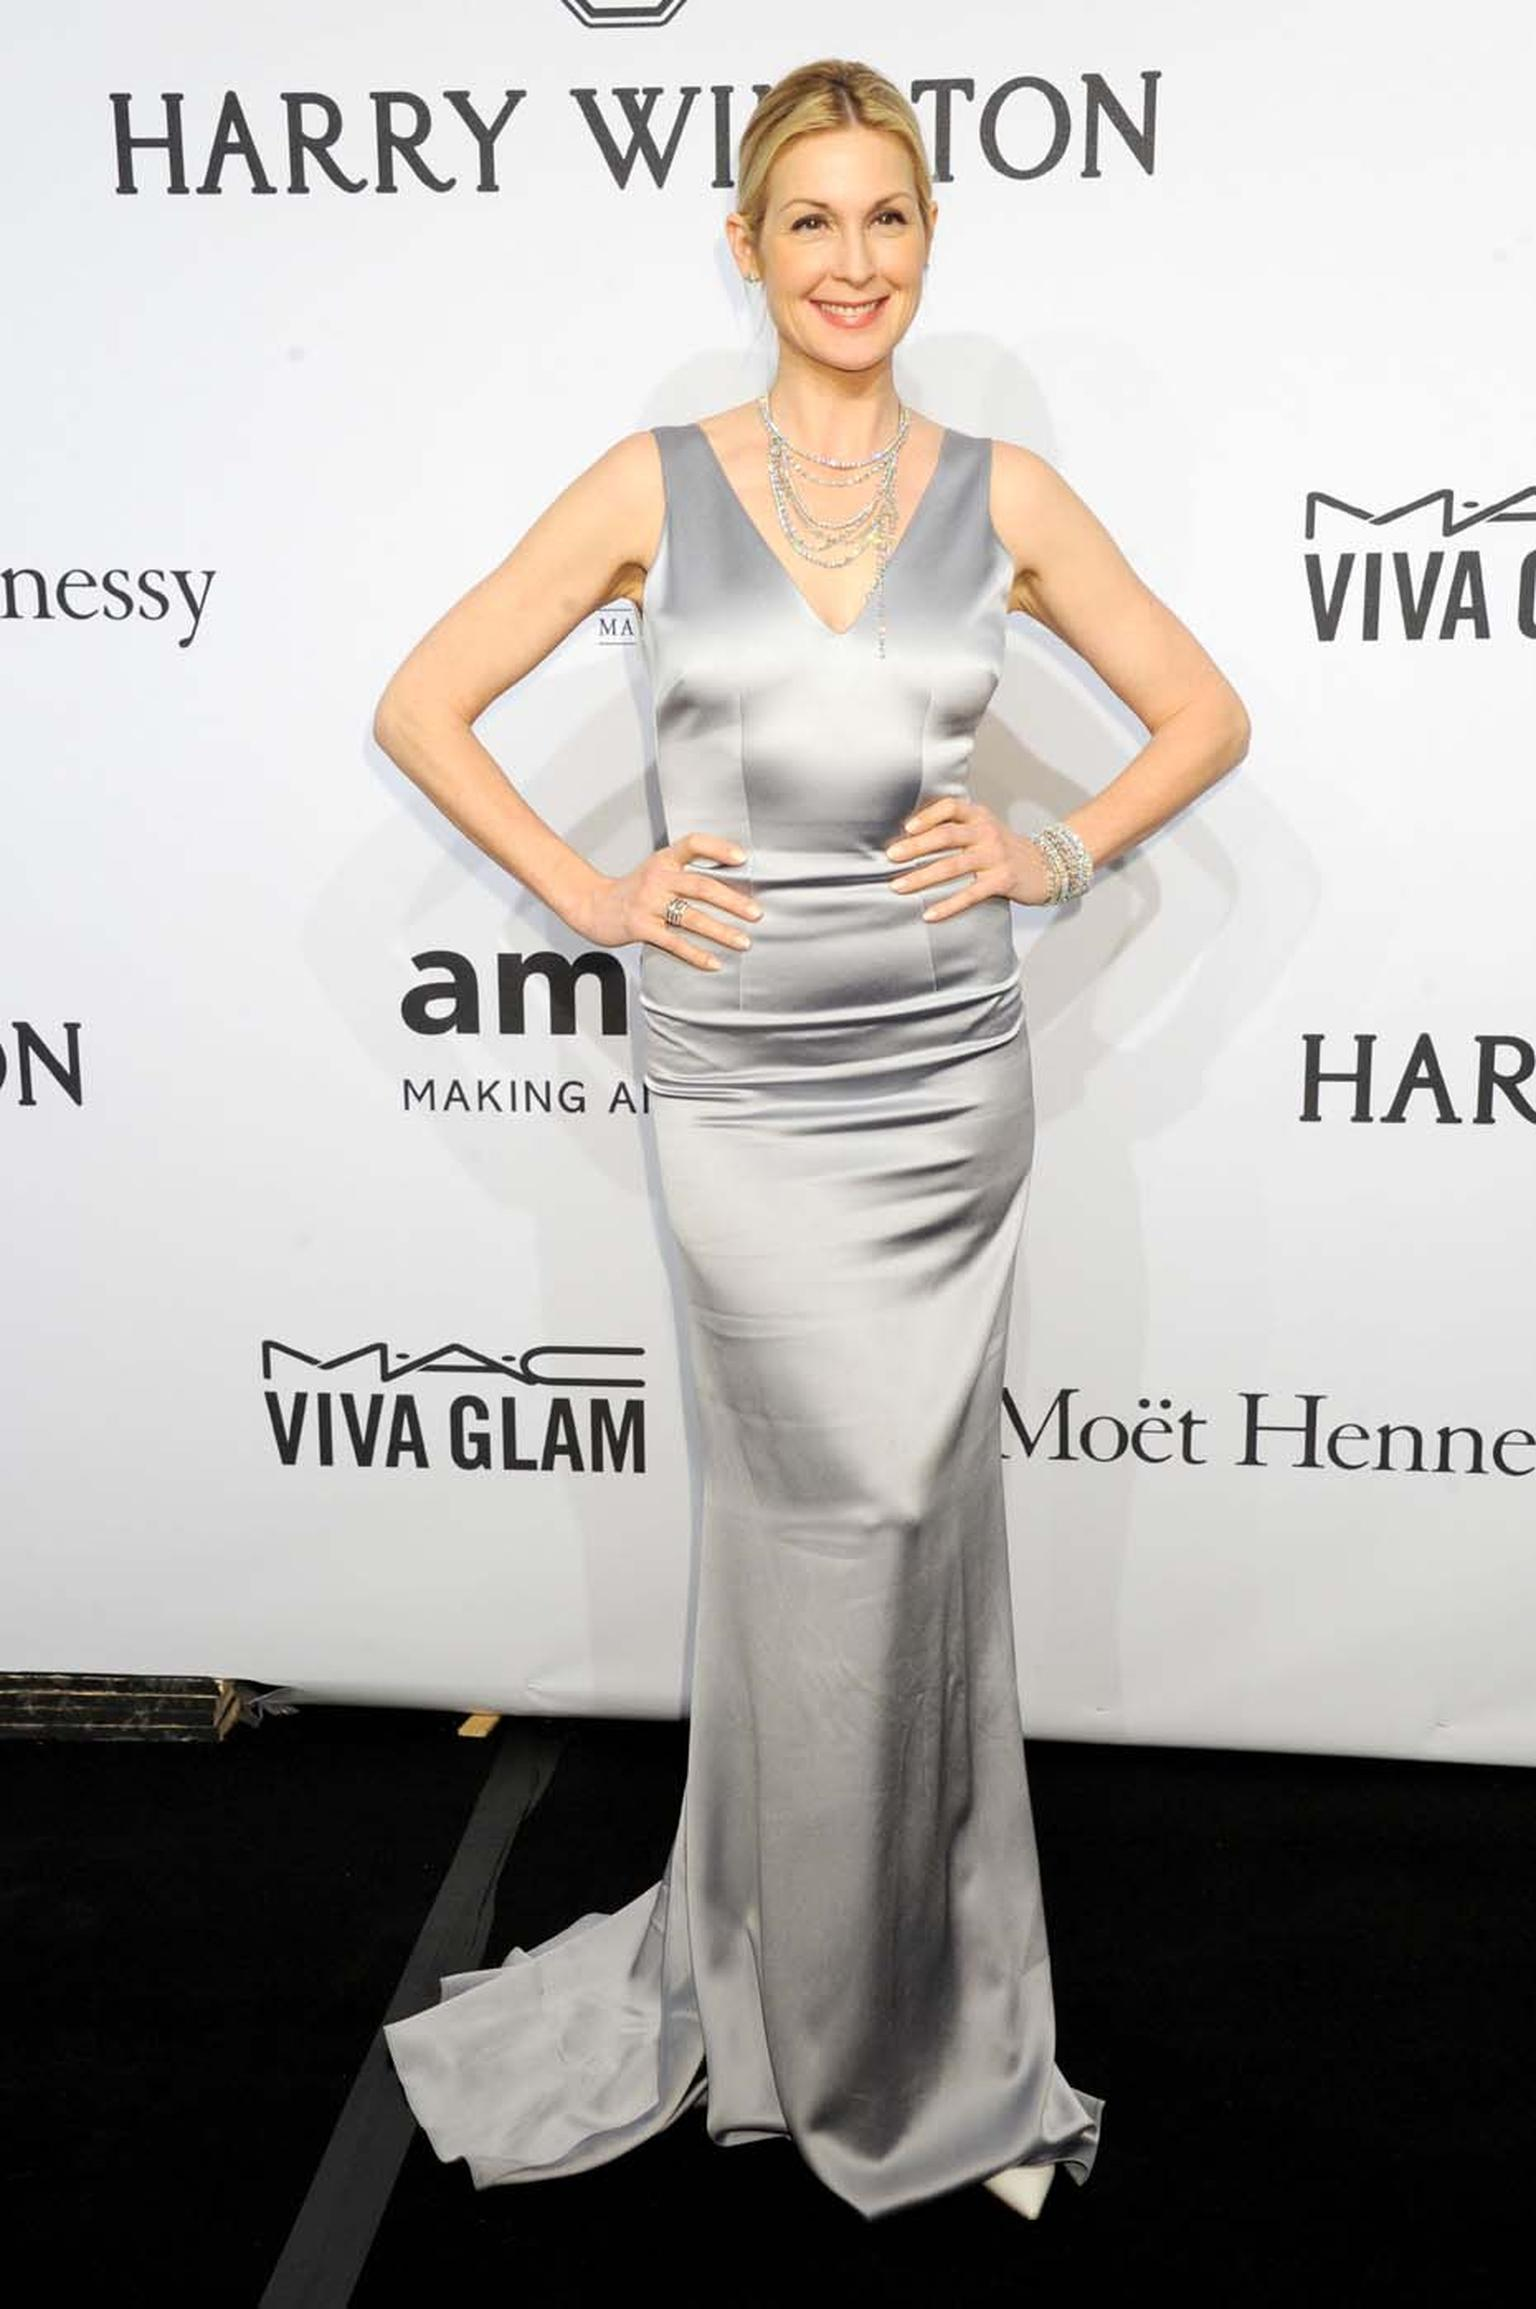 Actress Kelly Rutherford accessorised her stunning silver dress with several pieces from the new high jewellery Secret Combination collection by Harry Winston, at amfAR's New York Gala. Rutherford wore two pieces from the Secret Combination collection, a